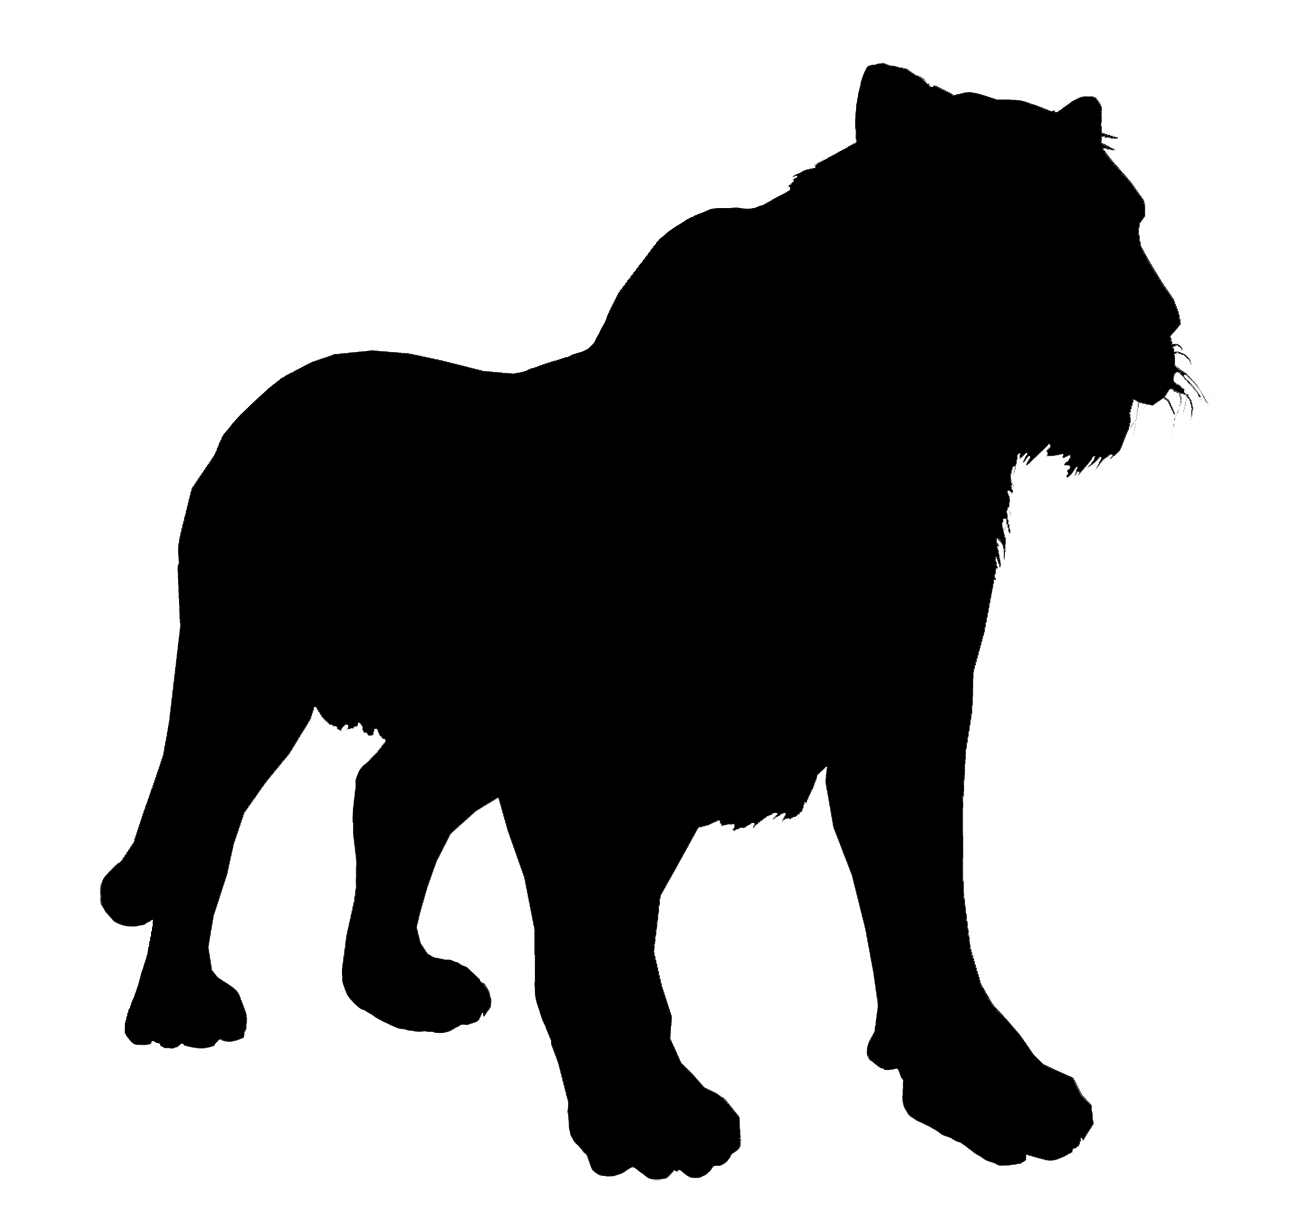 bengal tiger silhouette